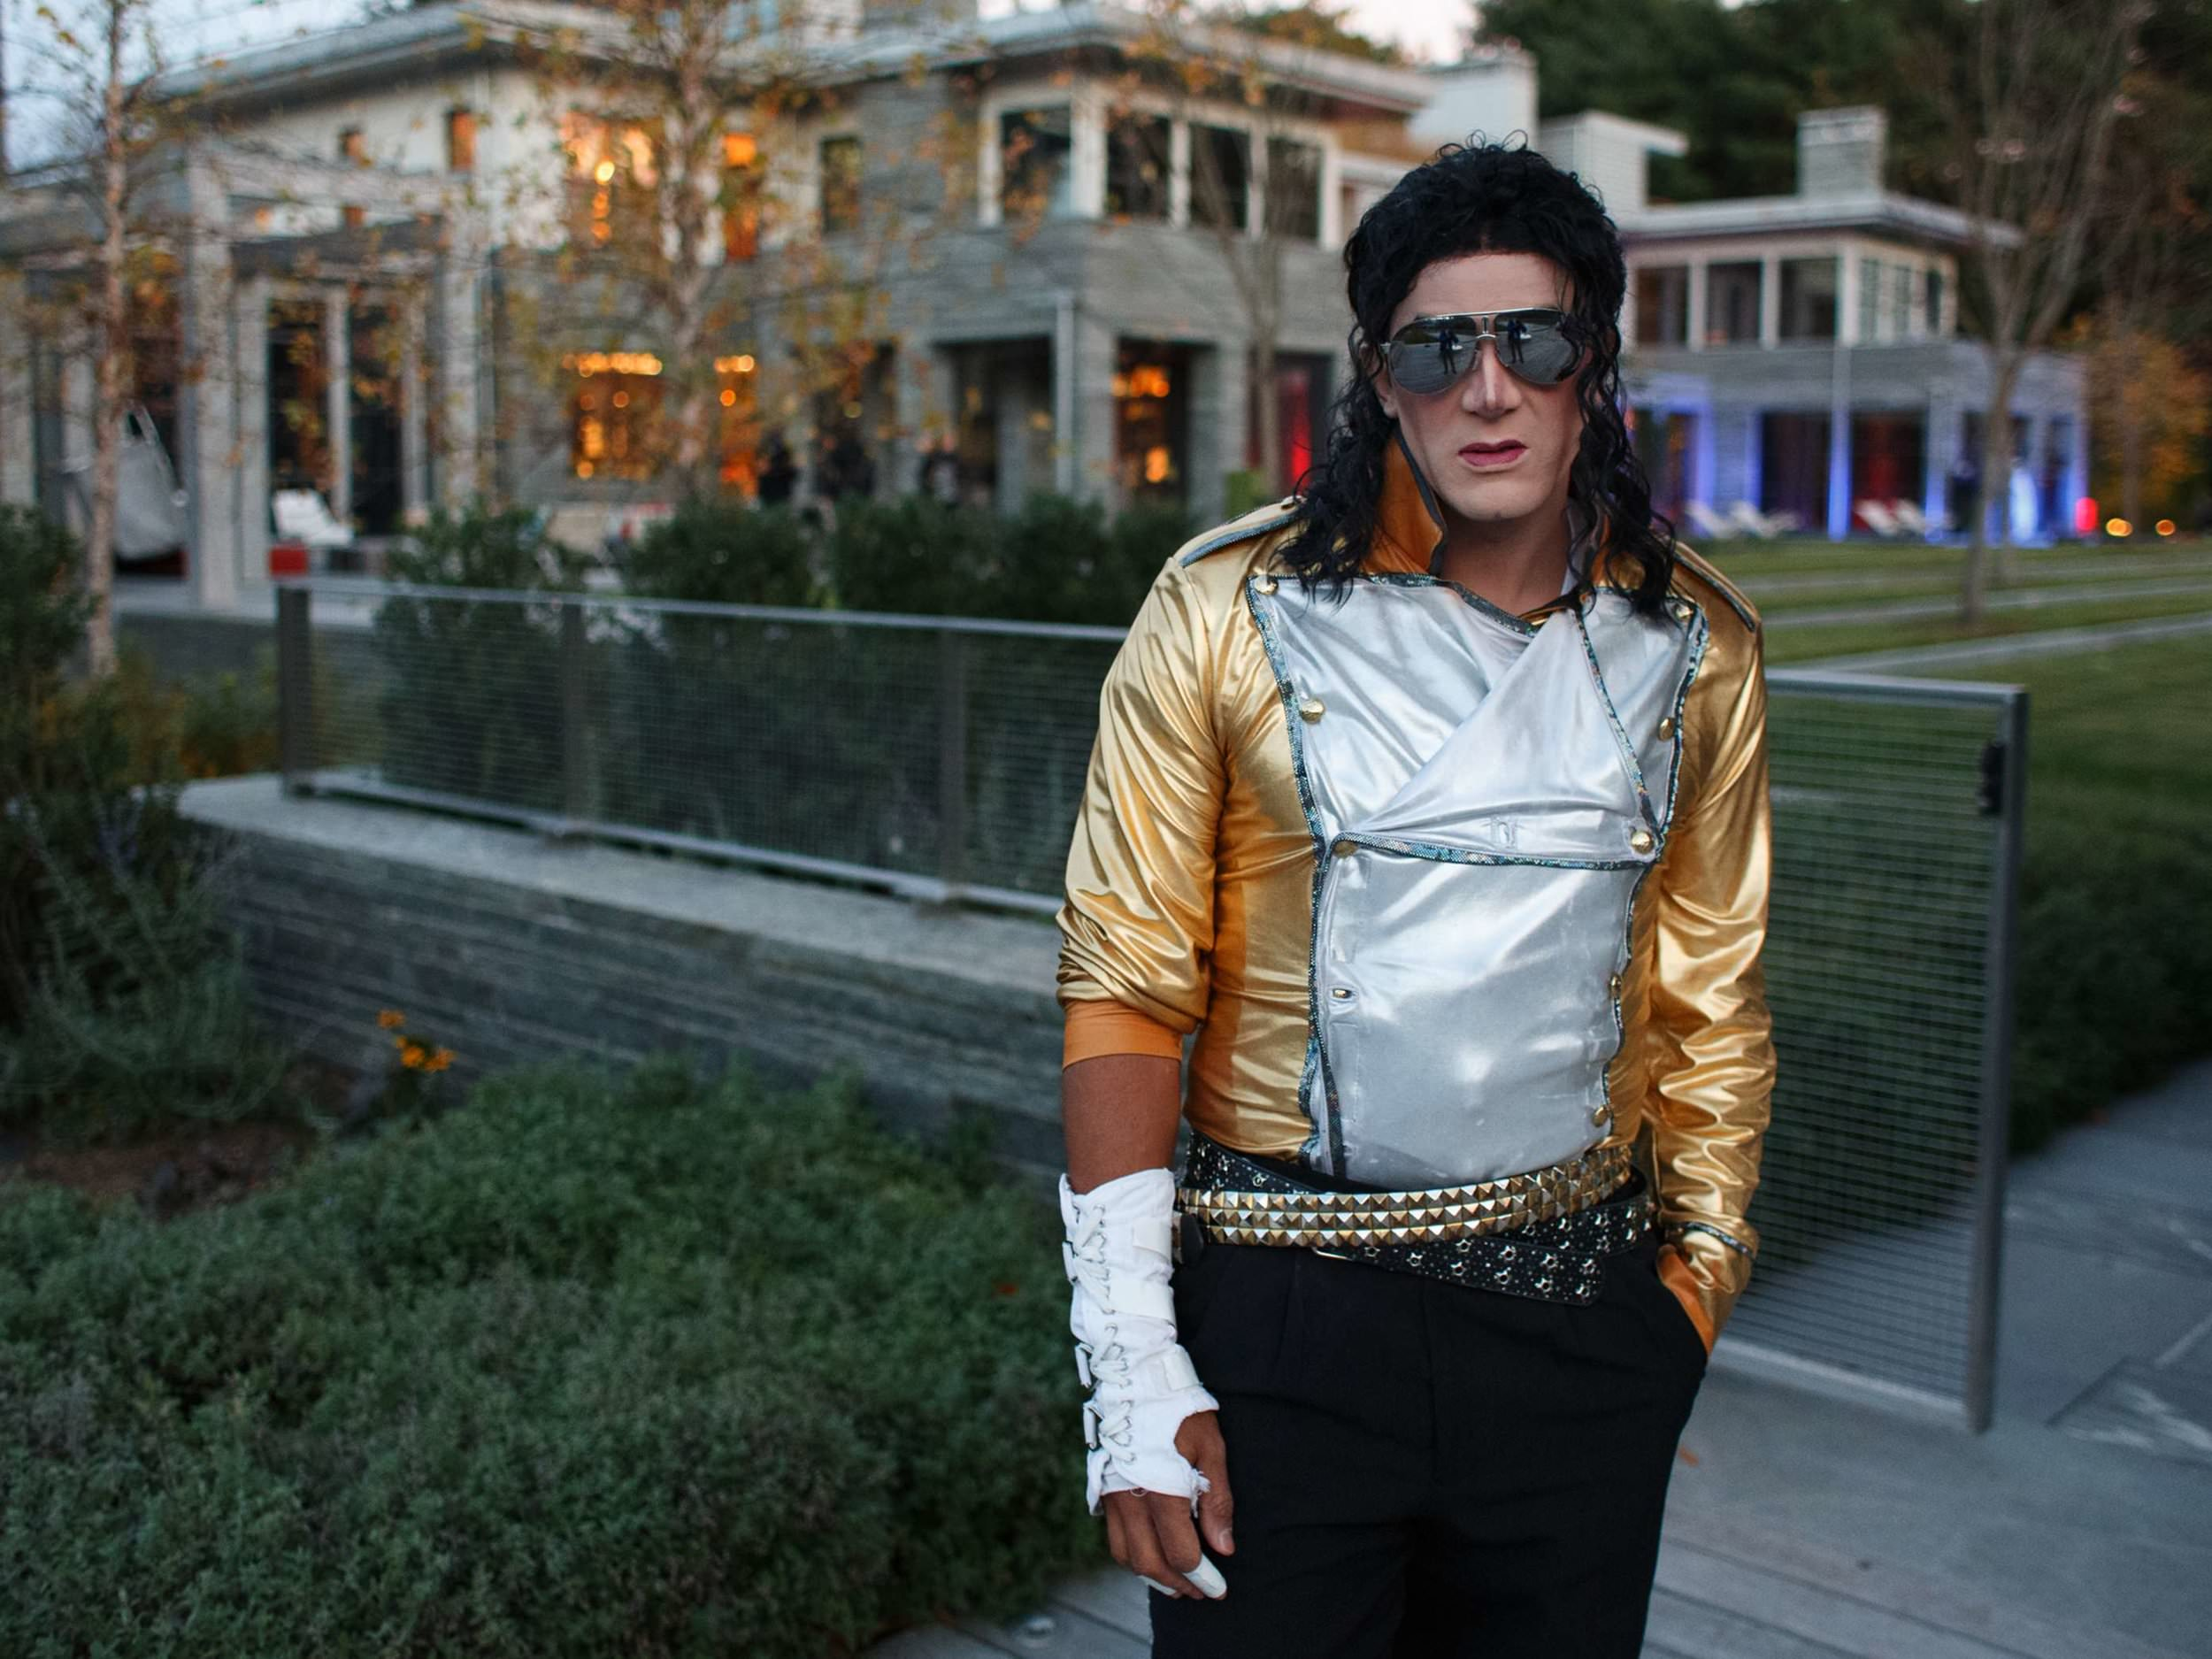 michael-jackson-impersonator-at-hollywood-party-in-boston-ma-michael-blanchard-photography-harrington-events.jpg